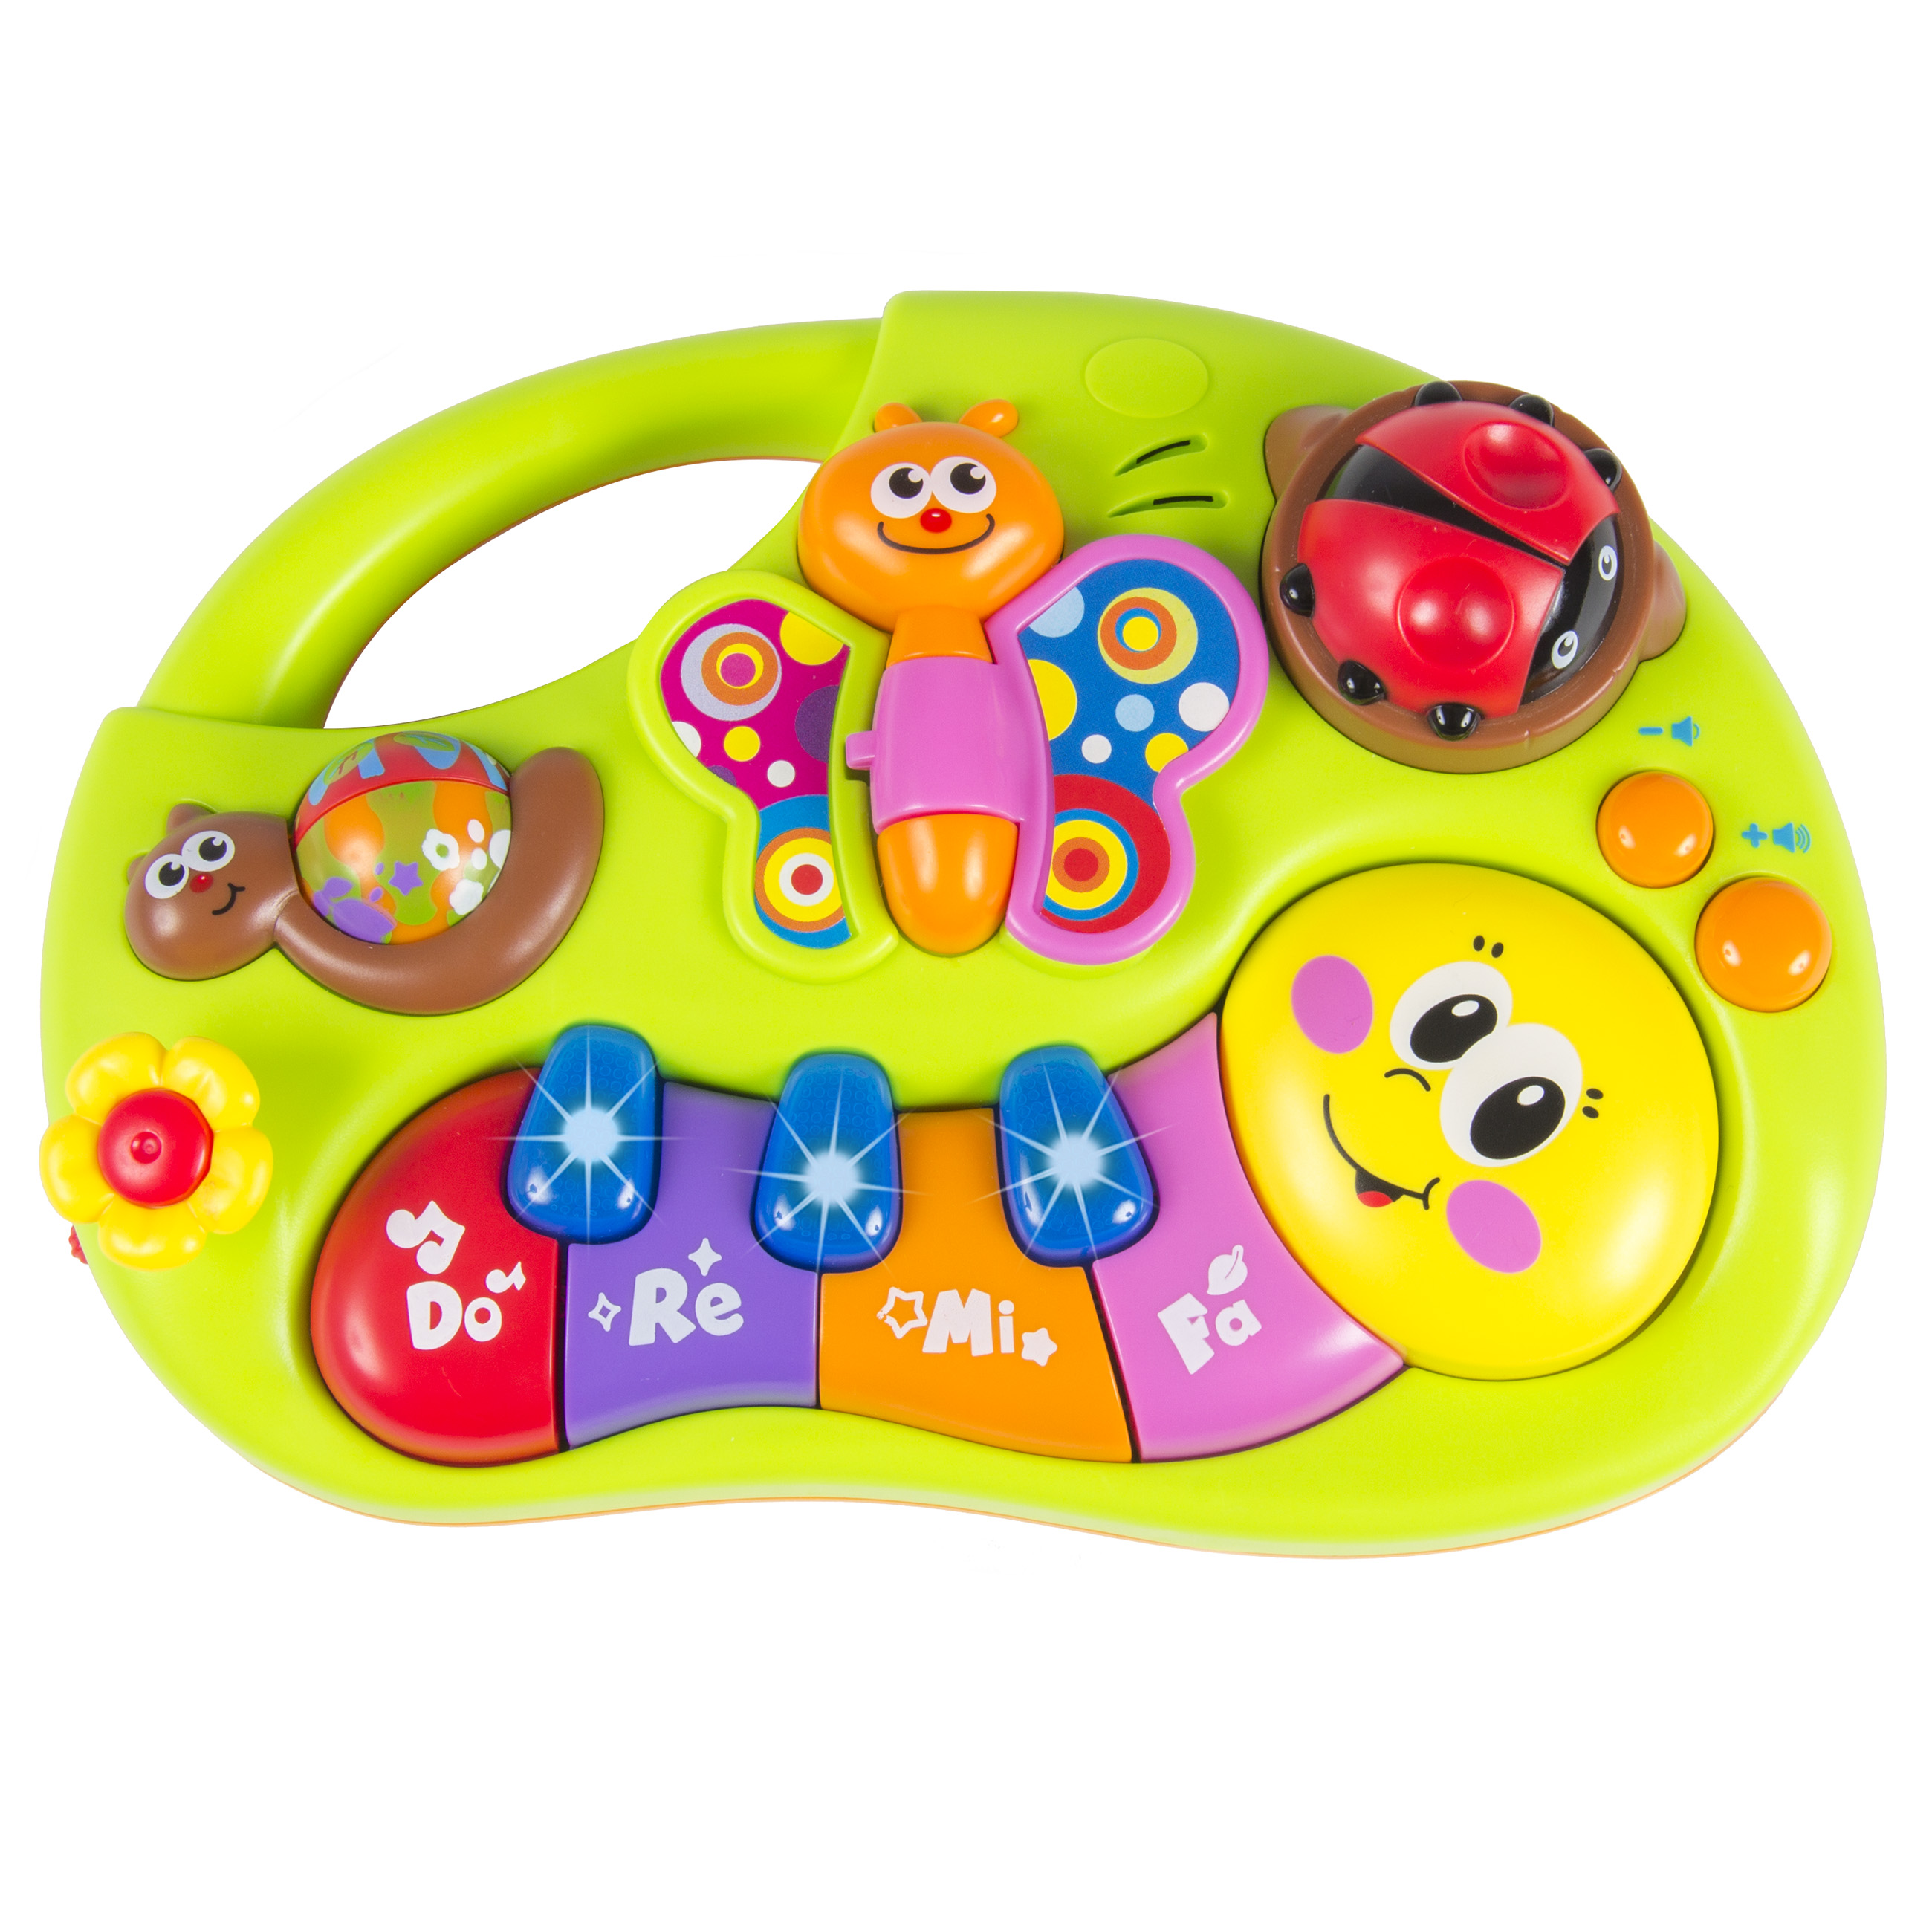 Toddler Educational Learning Machine Toy with Lights, Music Songs, Learning Stories and More